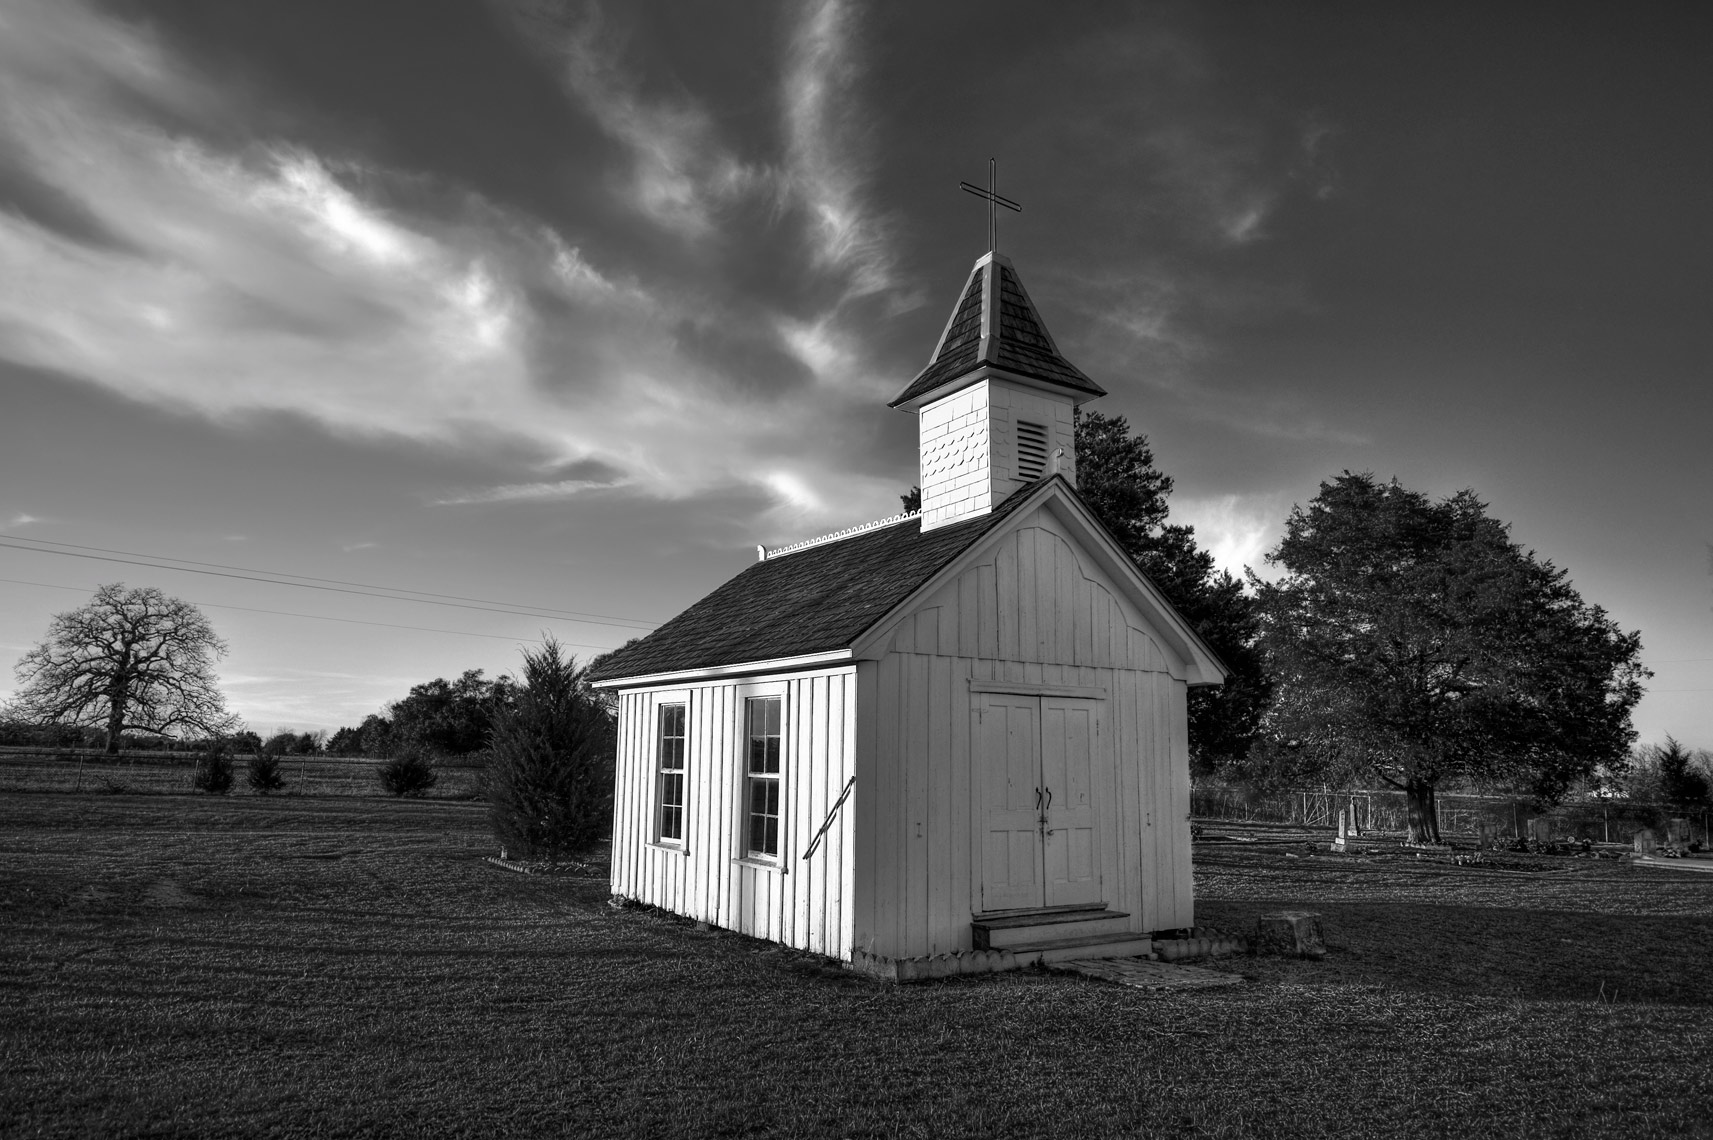 Small_Church_-7016-4_-5_-3_-2__tonemapped_BW